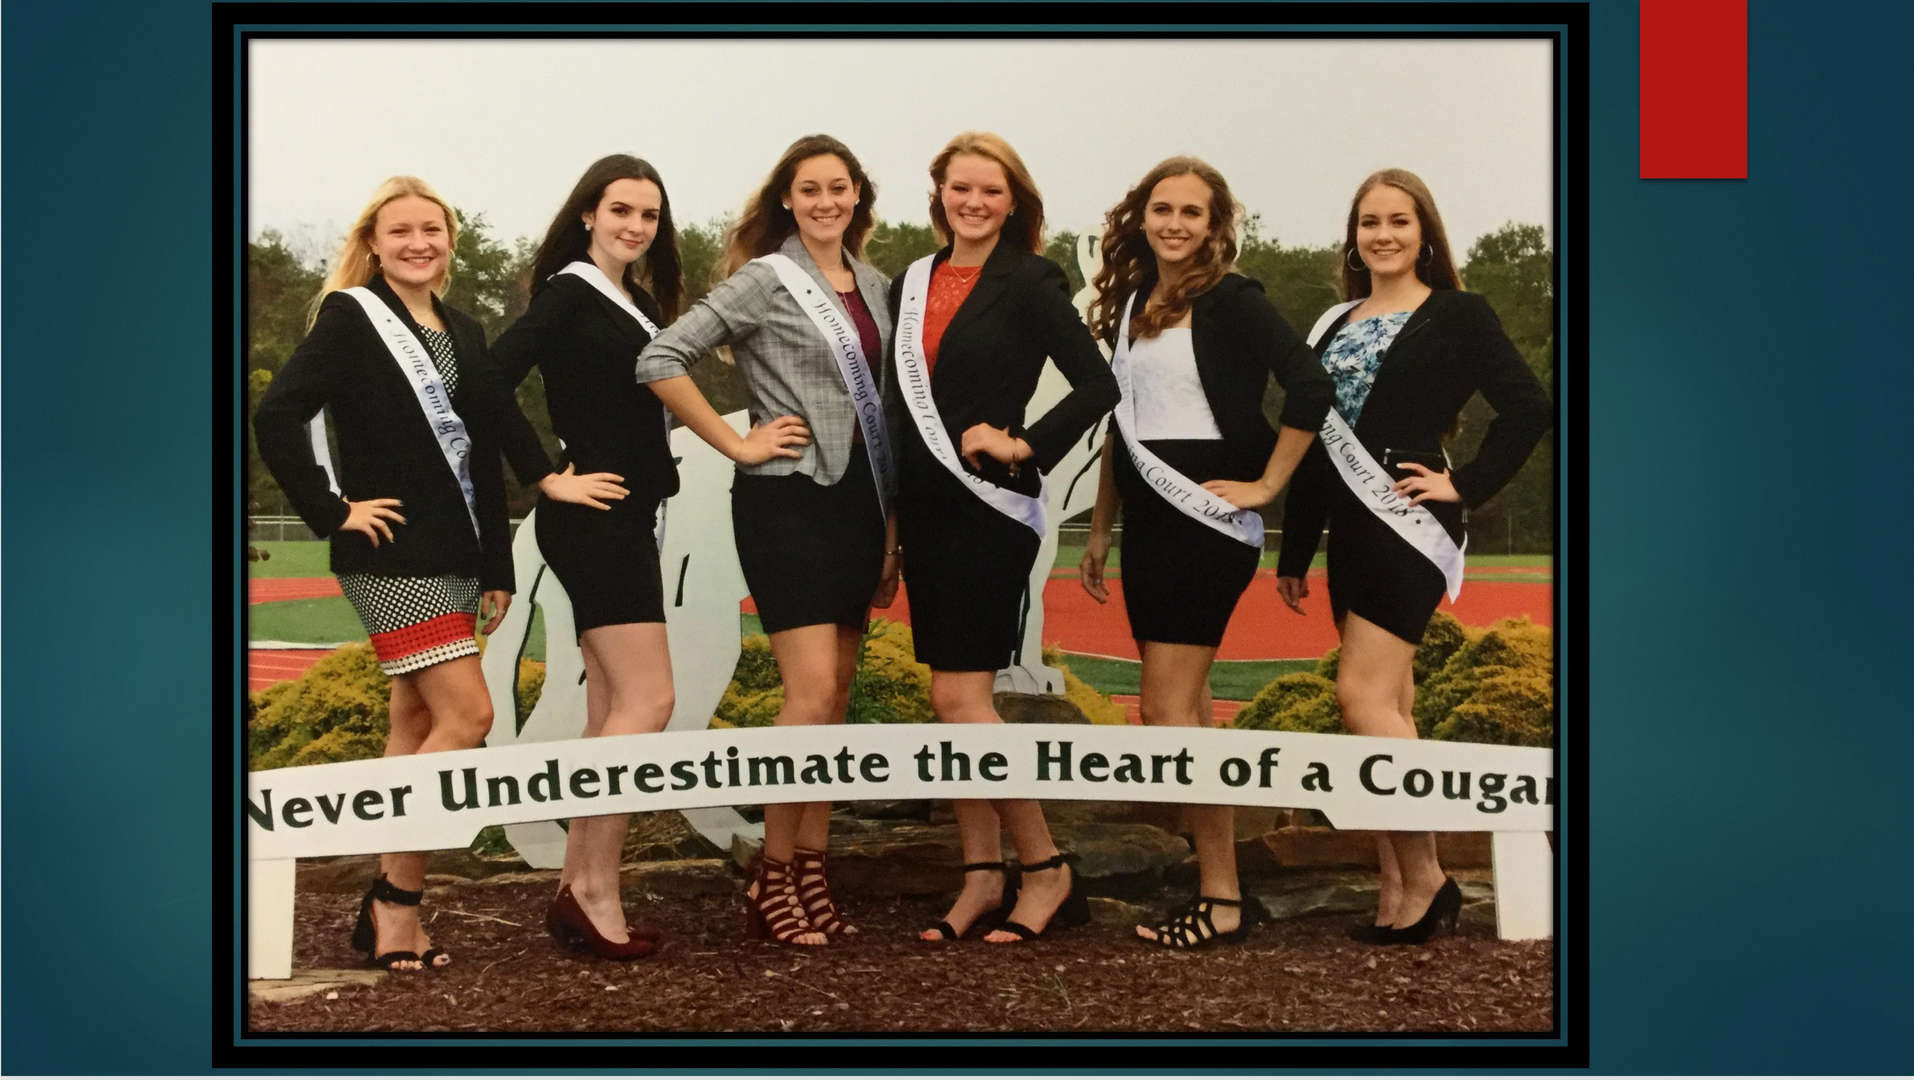 2018 Homecoming Court Girls:  Ryan, Cara, Cassidy, Corrin, Rebecca, Julia